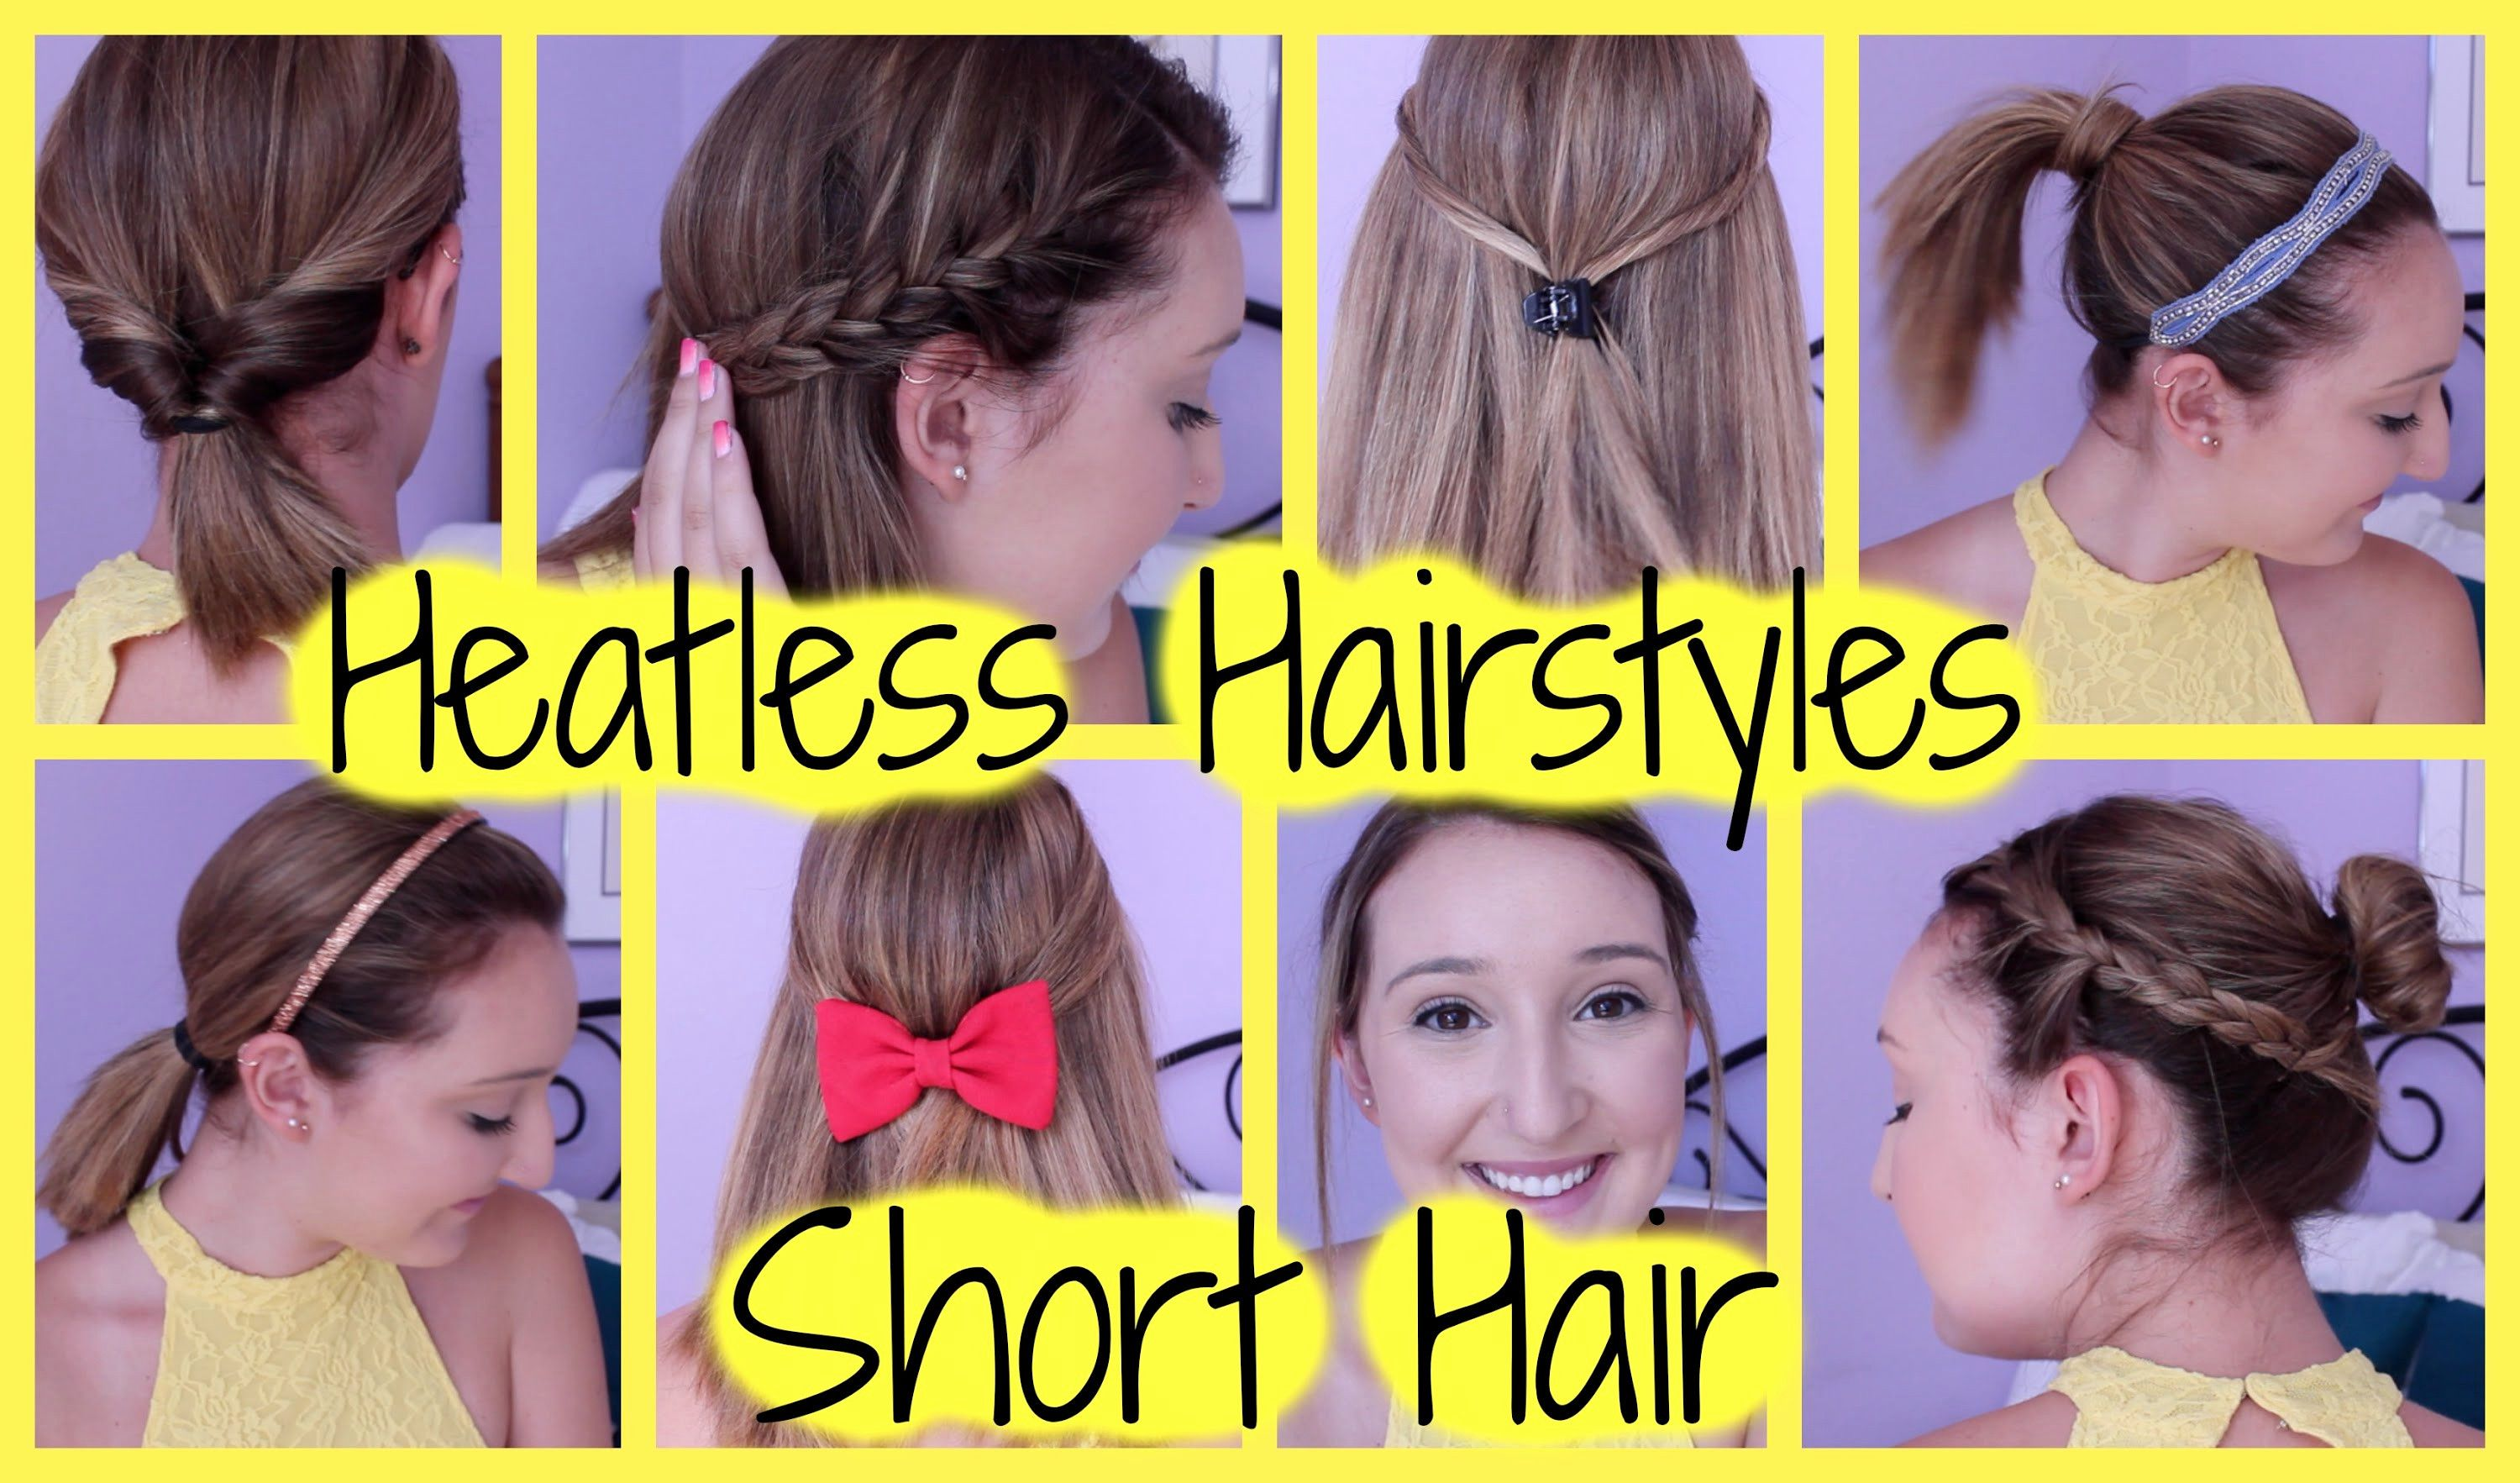 Hairstyles 20 School Hairstyles For Short Hair Awesome Graph Easy Hair Hairstyles Hair Styles